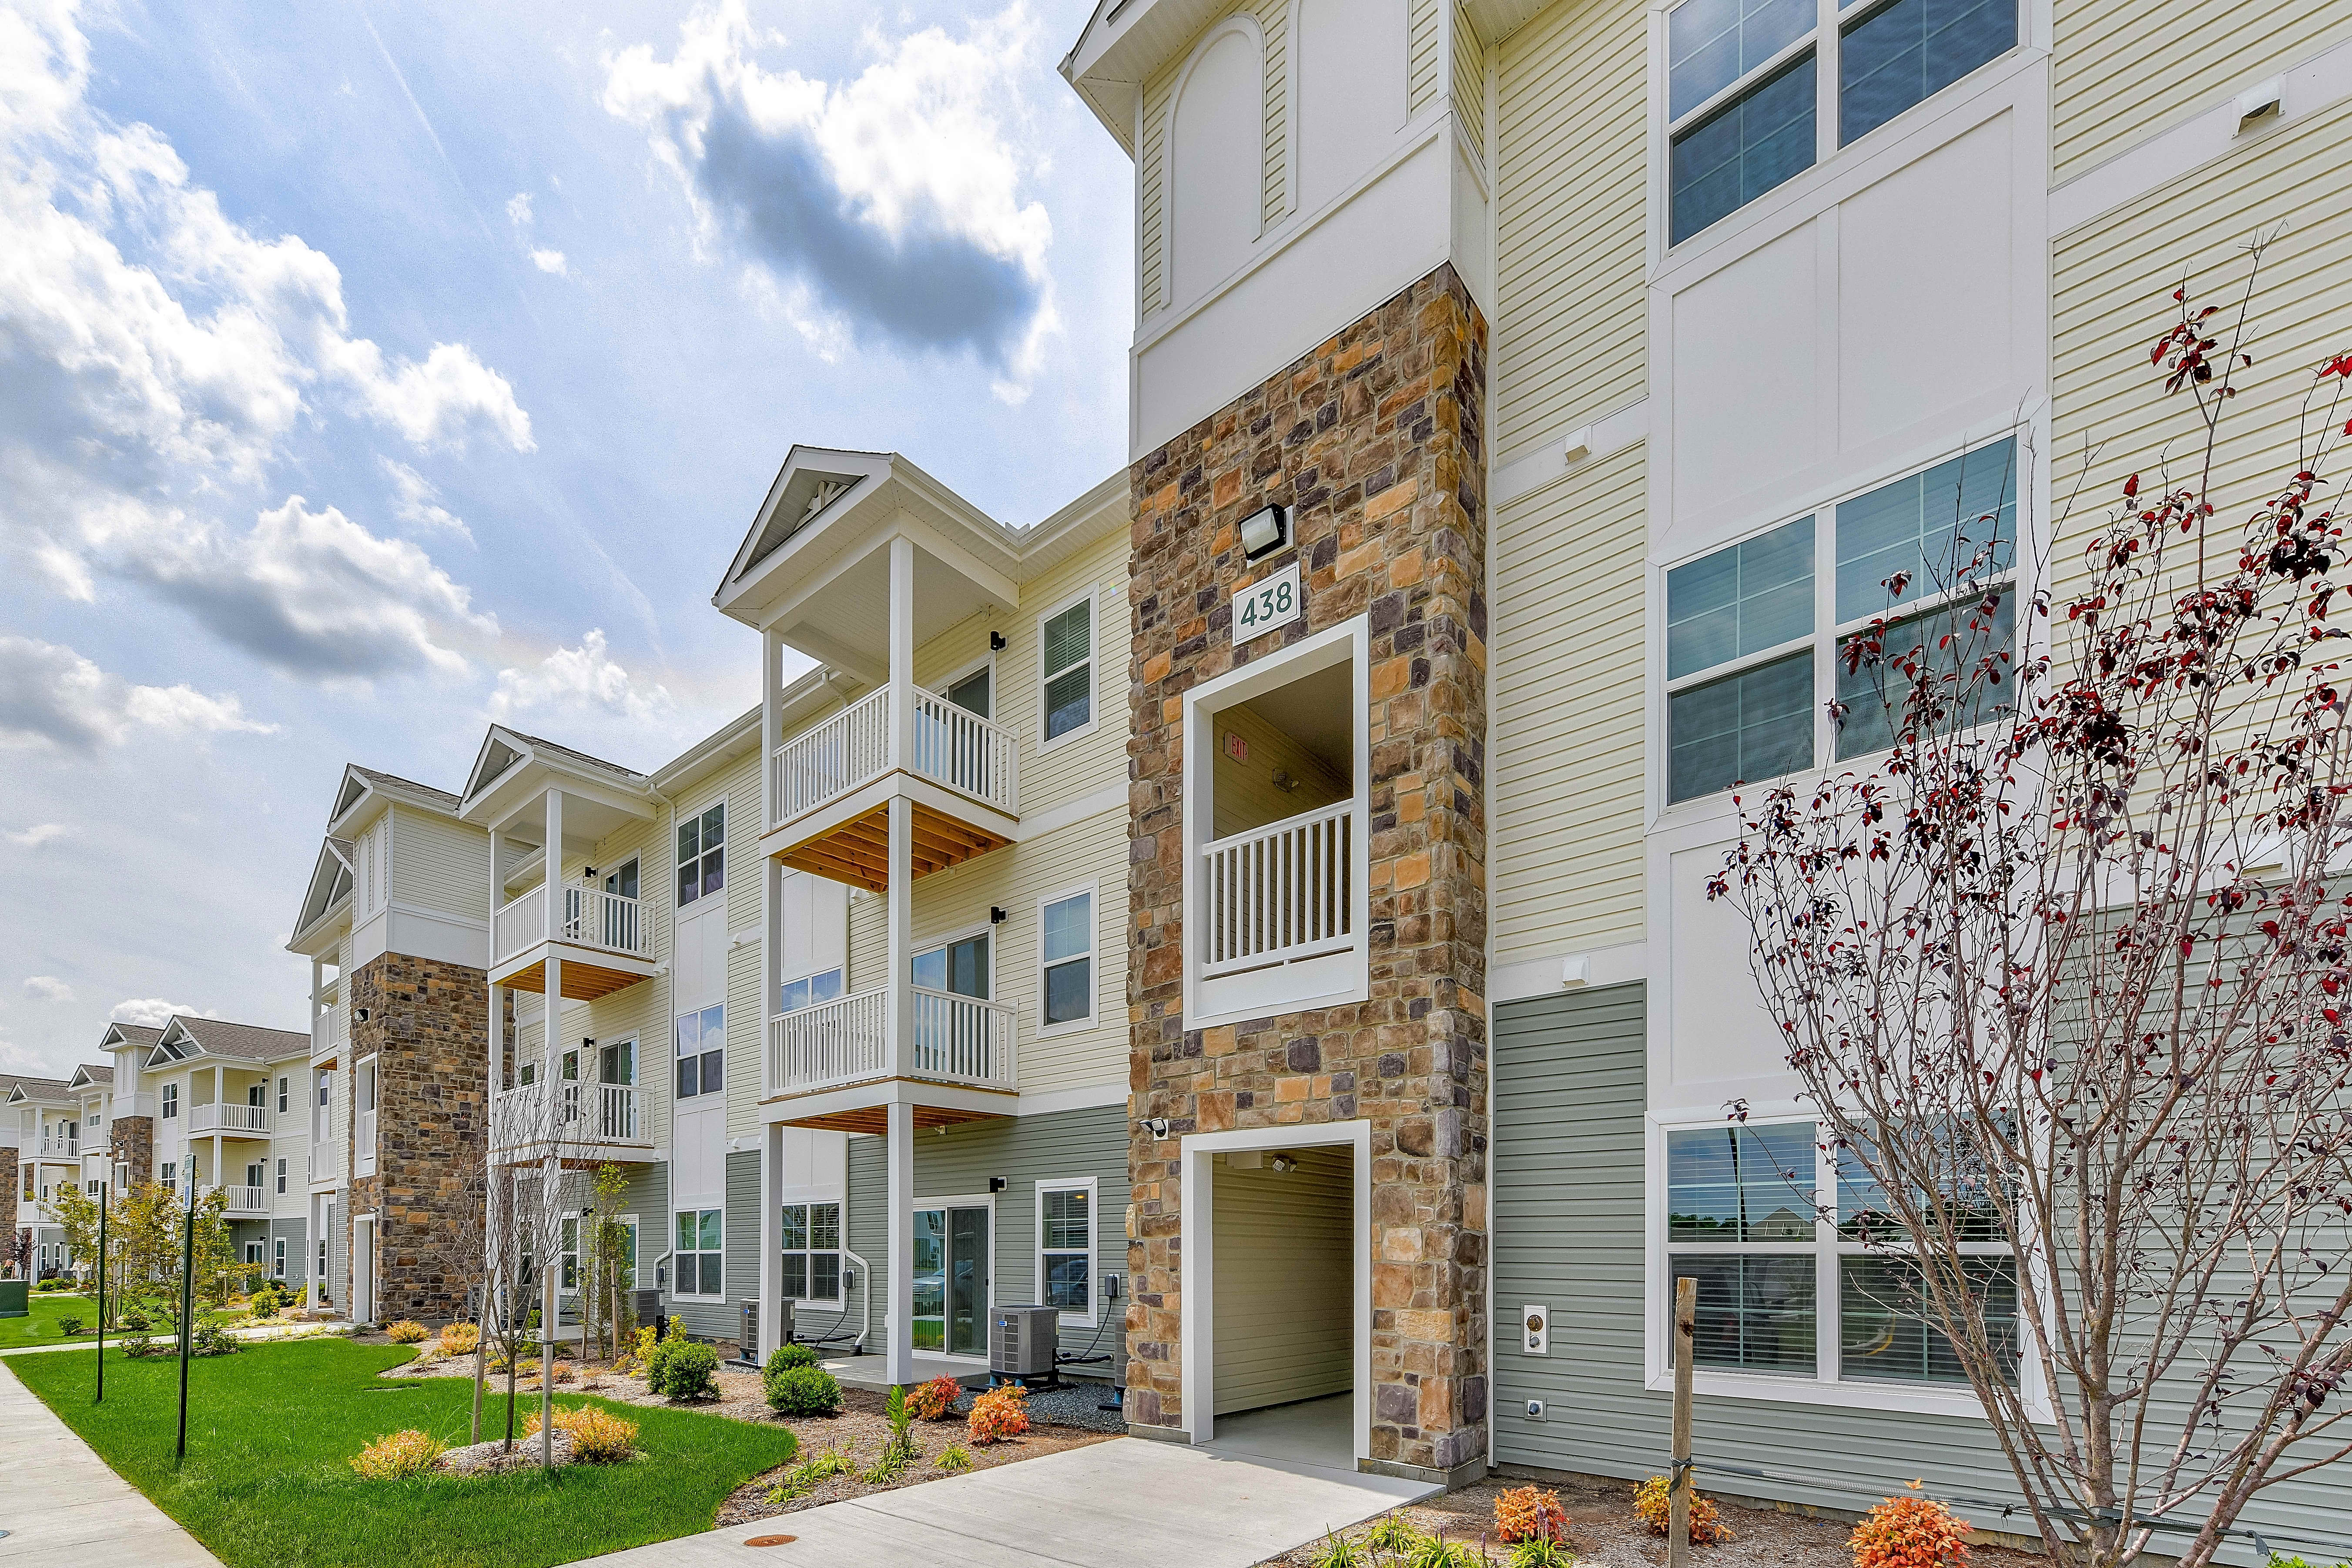 Apartments Near SU Coventry Square for Salisbury University Students in Salisbury, MD